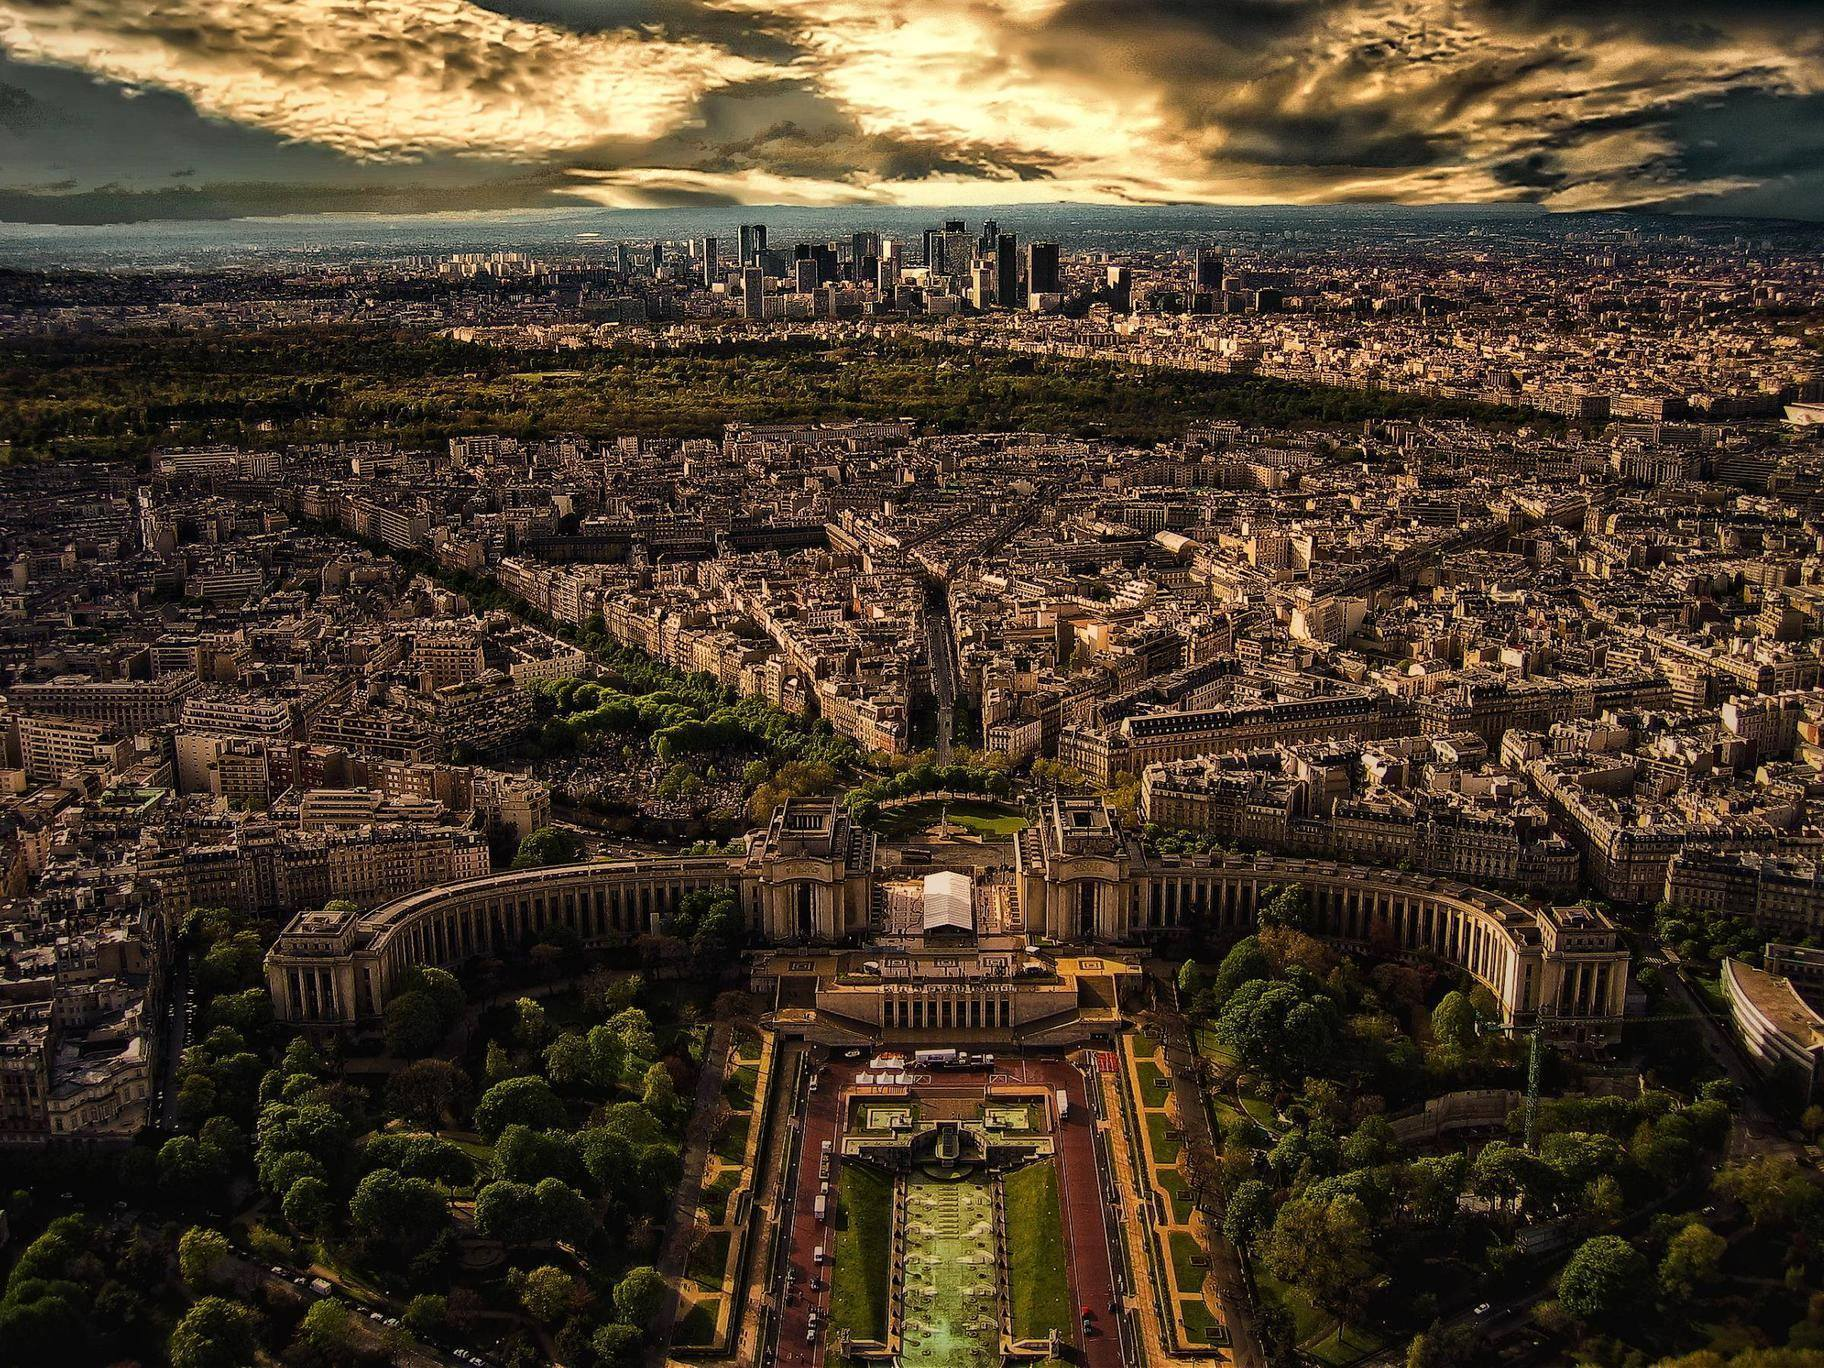 Paris from the Eiffel Tower http://t.co/z7wqVj67NT